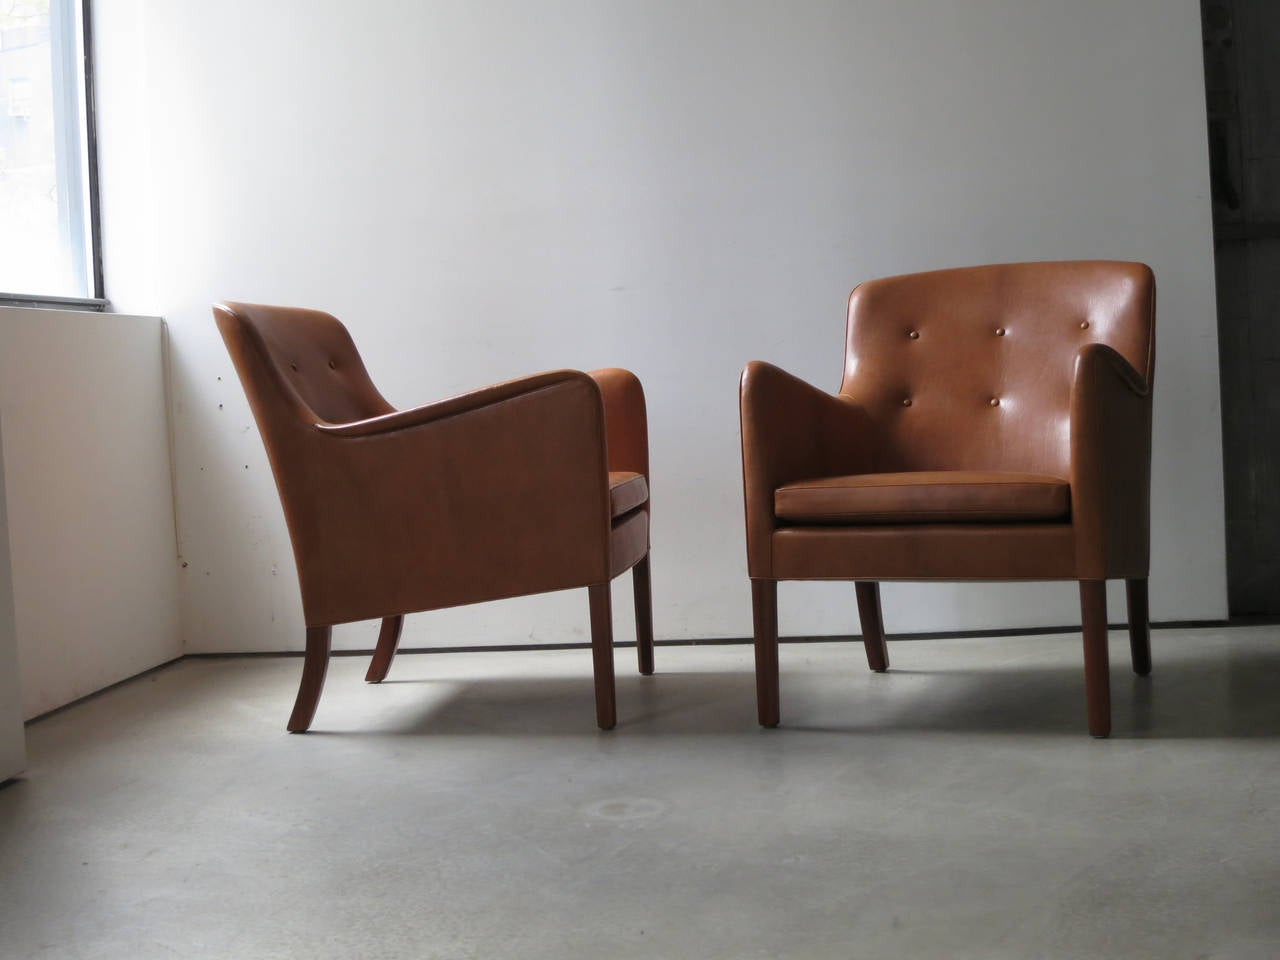 Scandinavian Modern Pair of 1940s Lounge Chairs in Nigerian Leather by Ole Wanscher